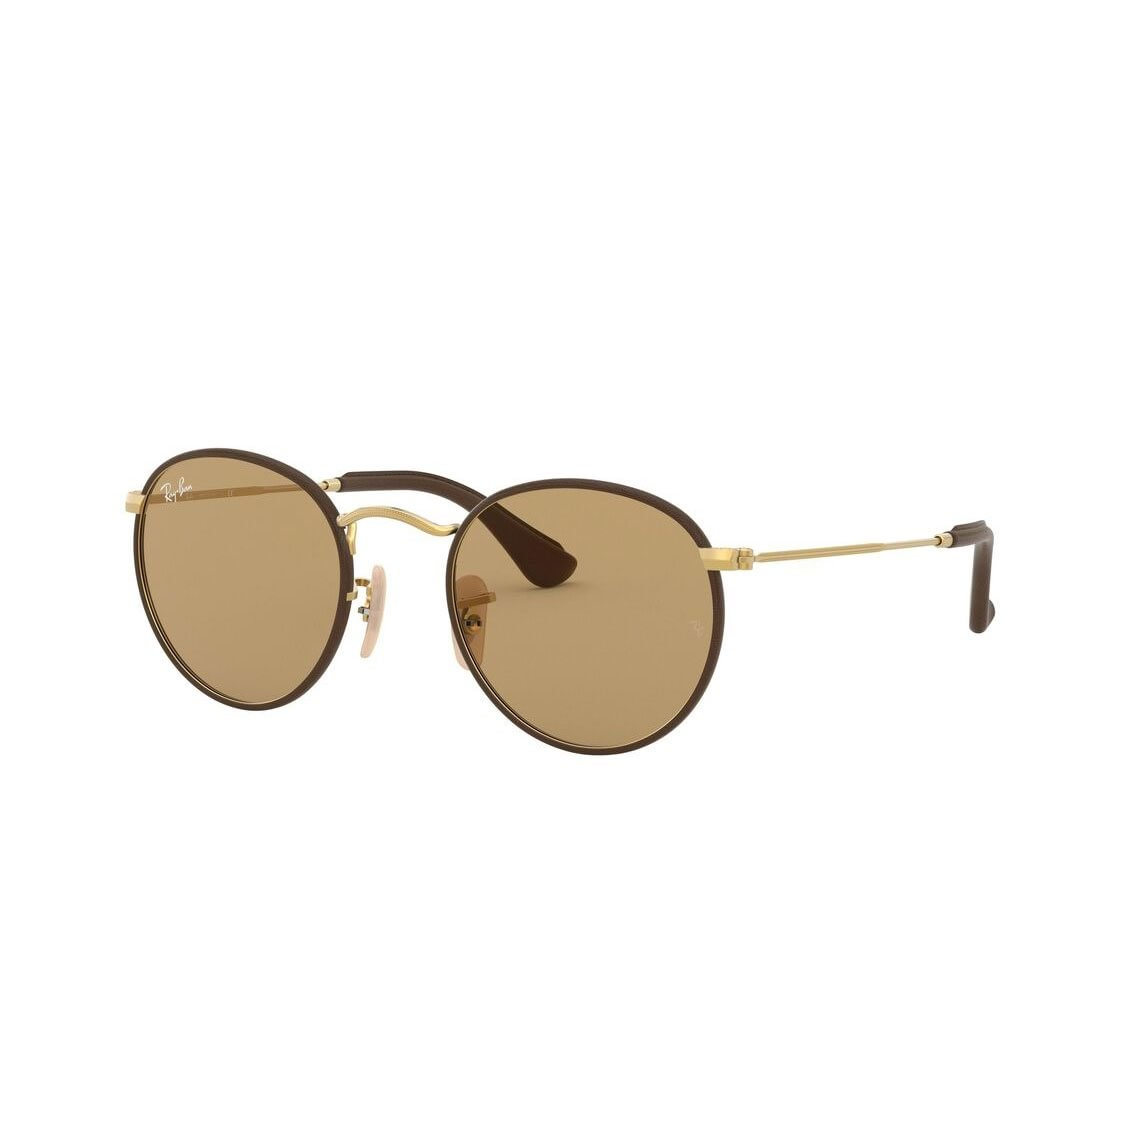 Ray-Ban Round Craft RB3475Q 112/53 50